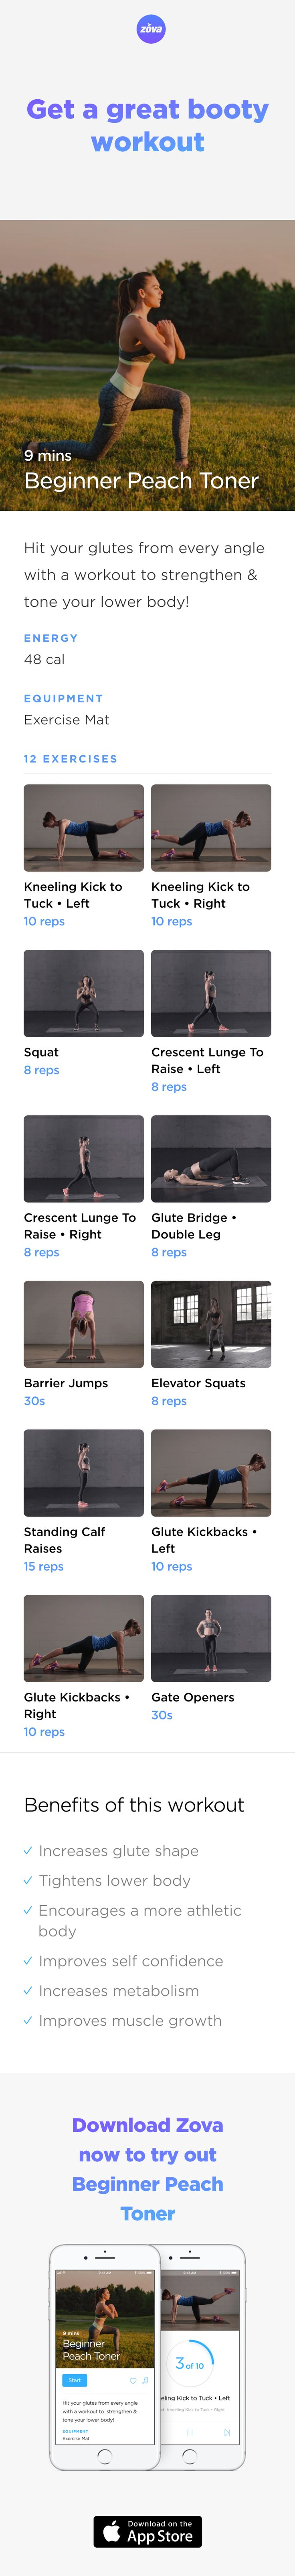 Looking to tone and shape your booty? All you need to do is focus on your glutes! They help shape and firm your butt, as well as strengthen your lower body. Working your glute muscles to the max with this quick and easy workout for beginners, will get you booty you deserve in no time! #tone #HIIT #workout #fitness #butt #booty